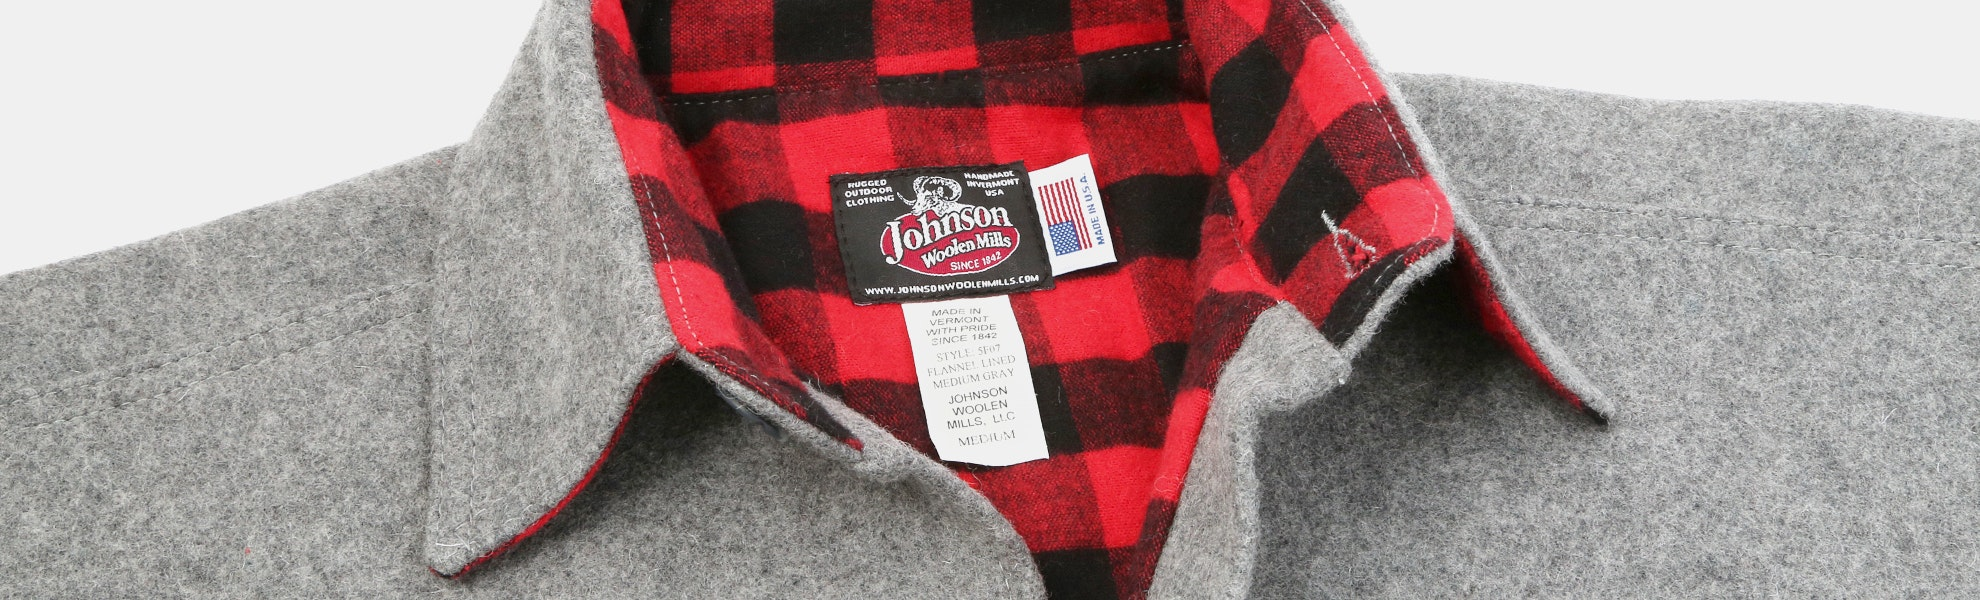 Johnson Woolen Mills Flannel-Lined Wool Shirt